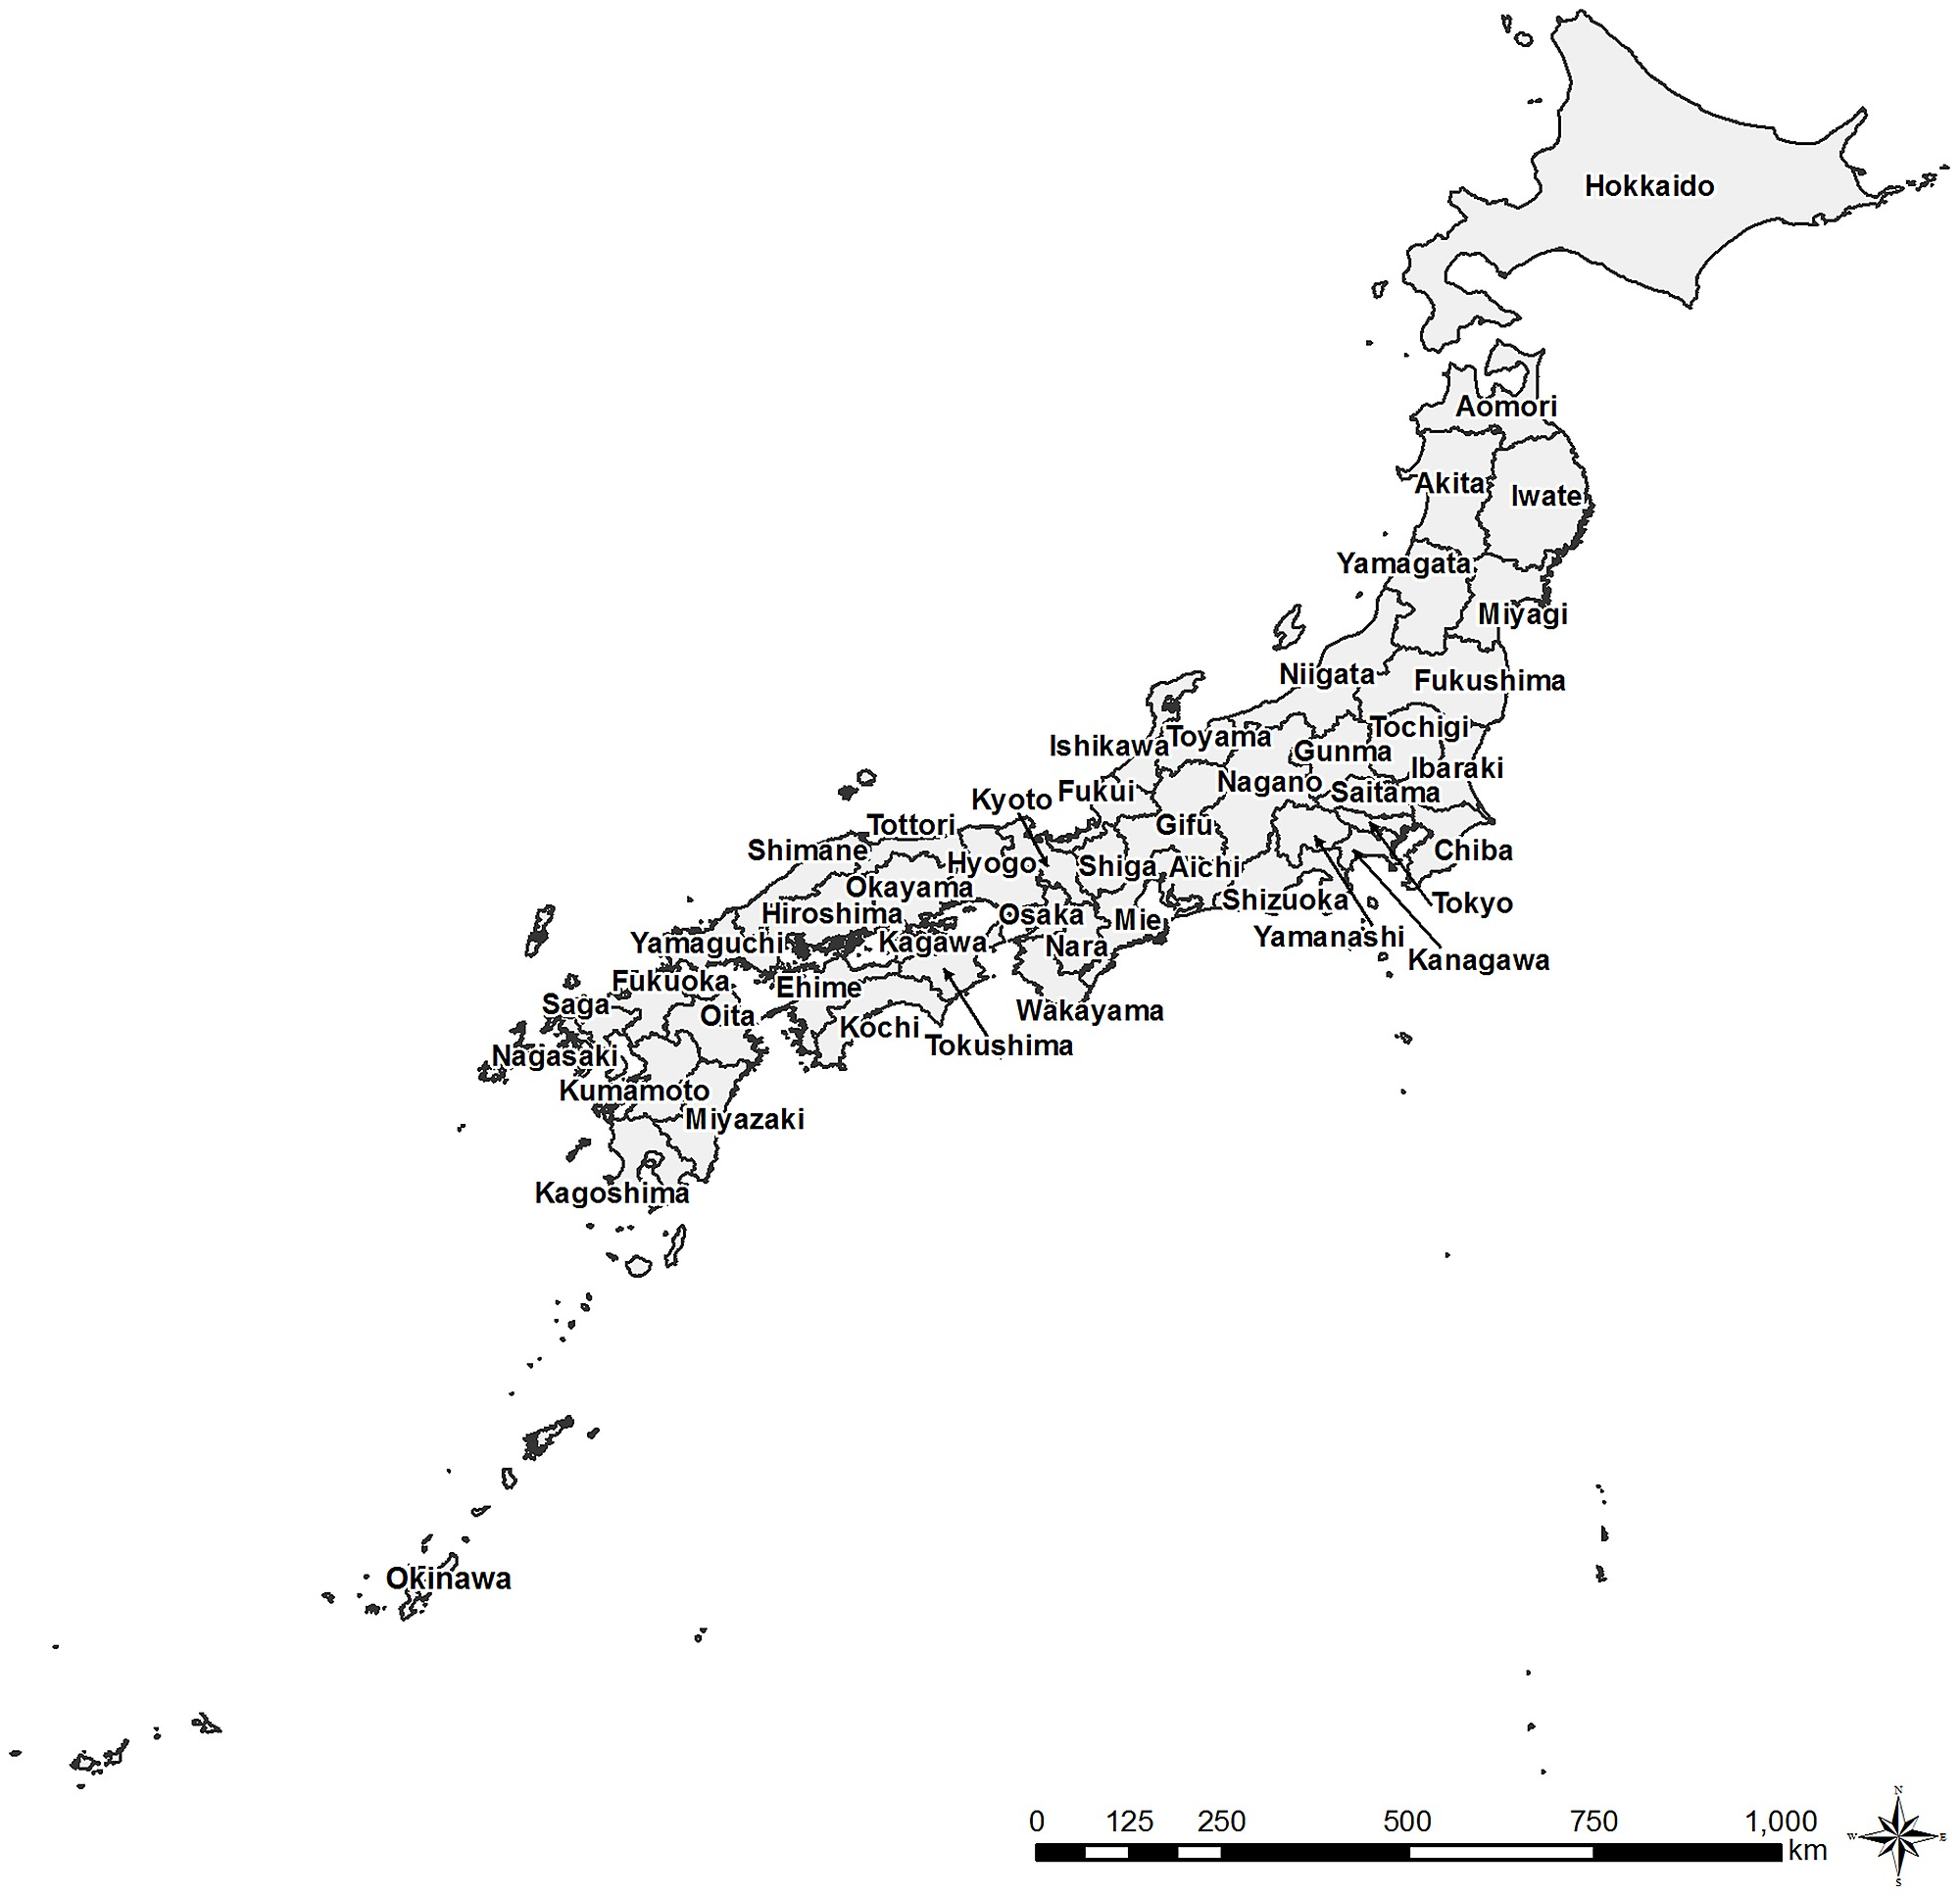 Labled Map Of Japan.A Blank Map Of Japan